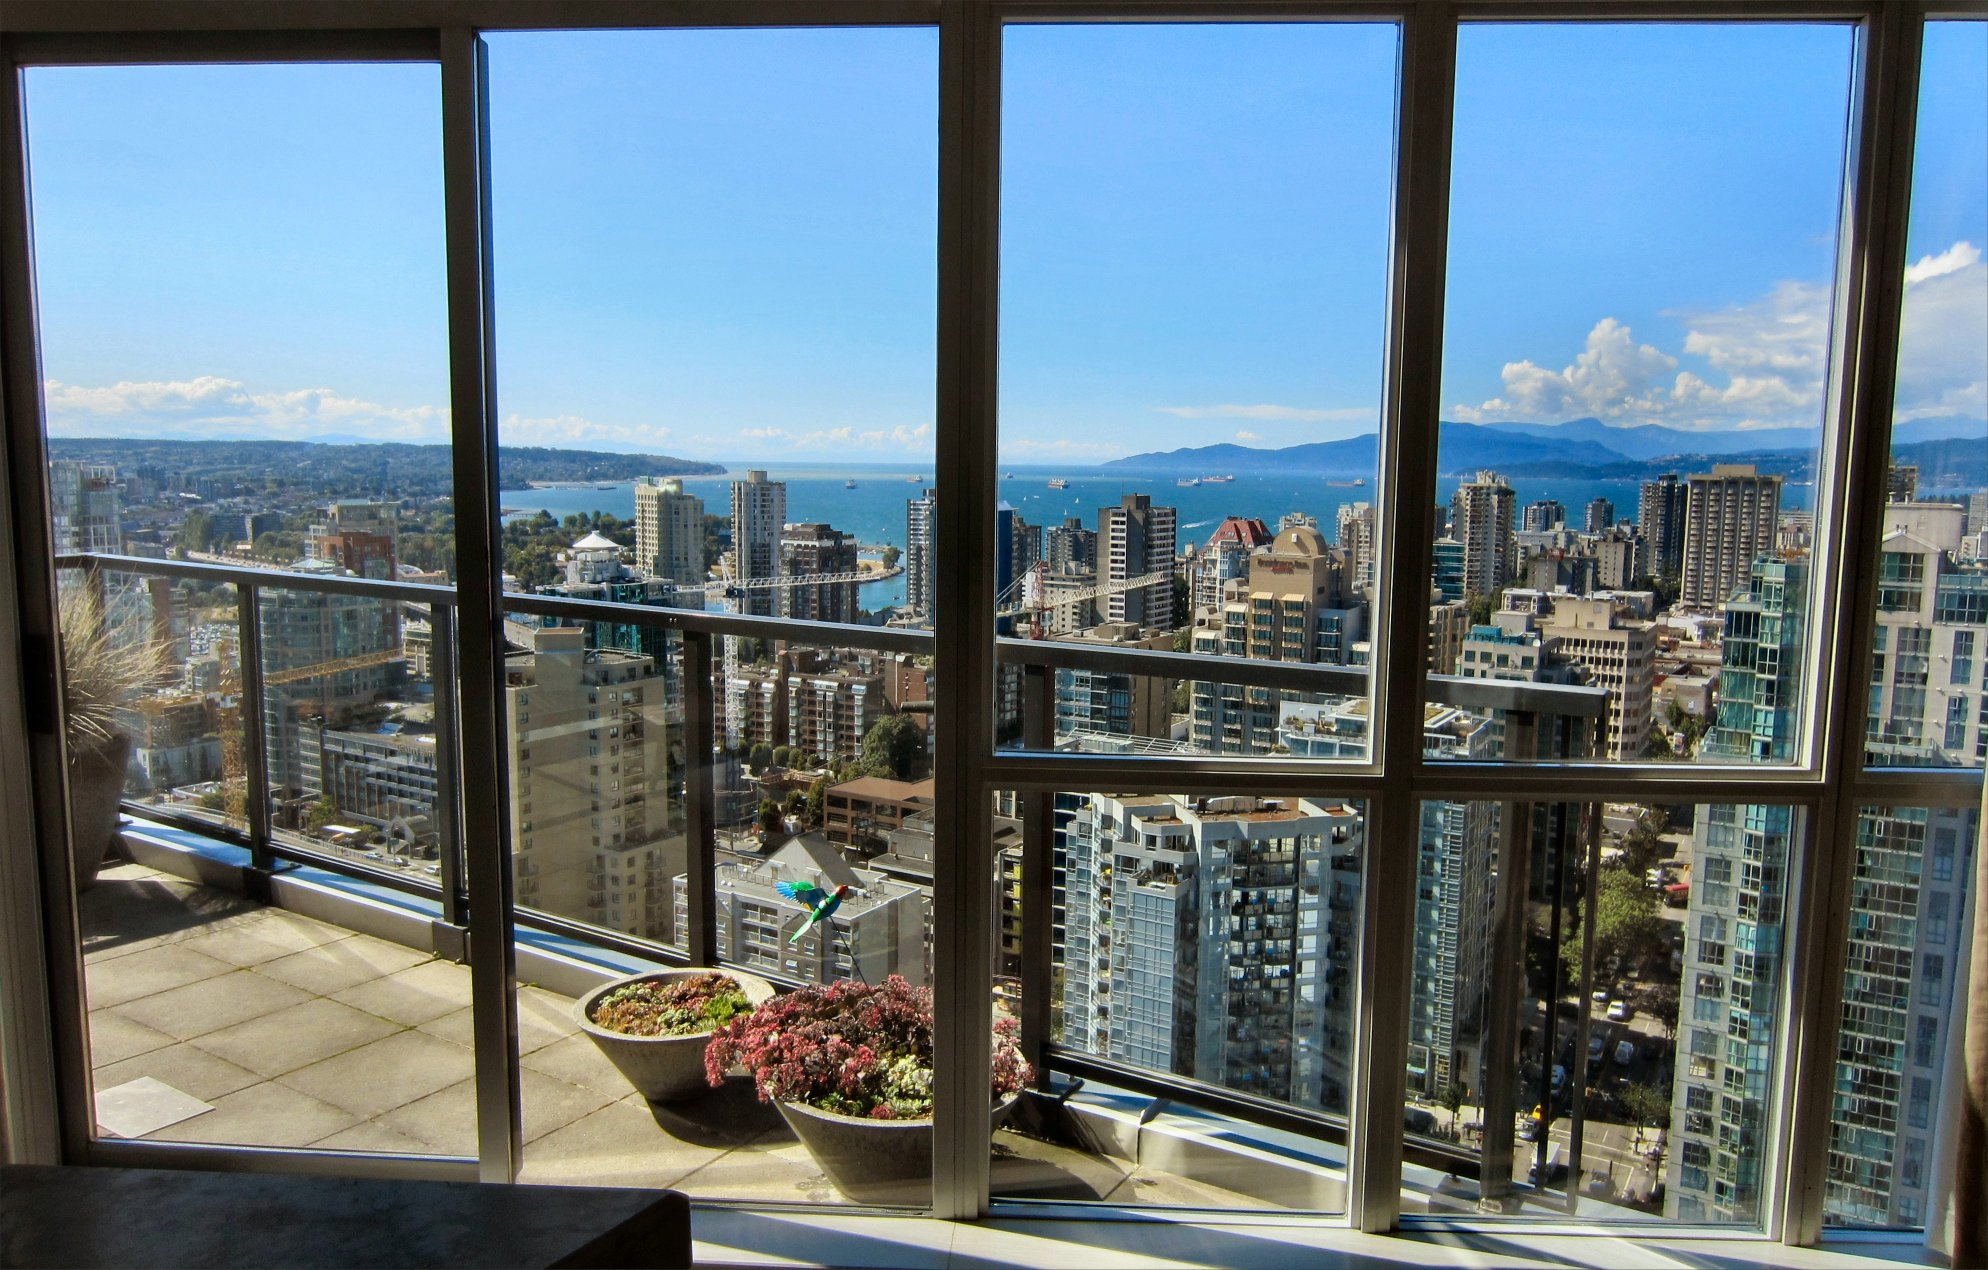 apartment rentals in Vancouver | Inside NanaBread's Head